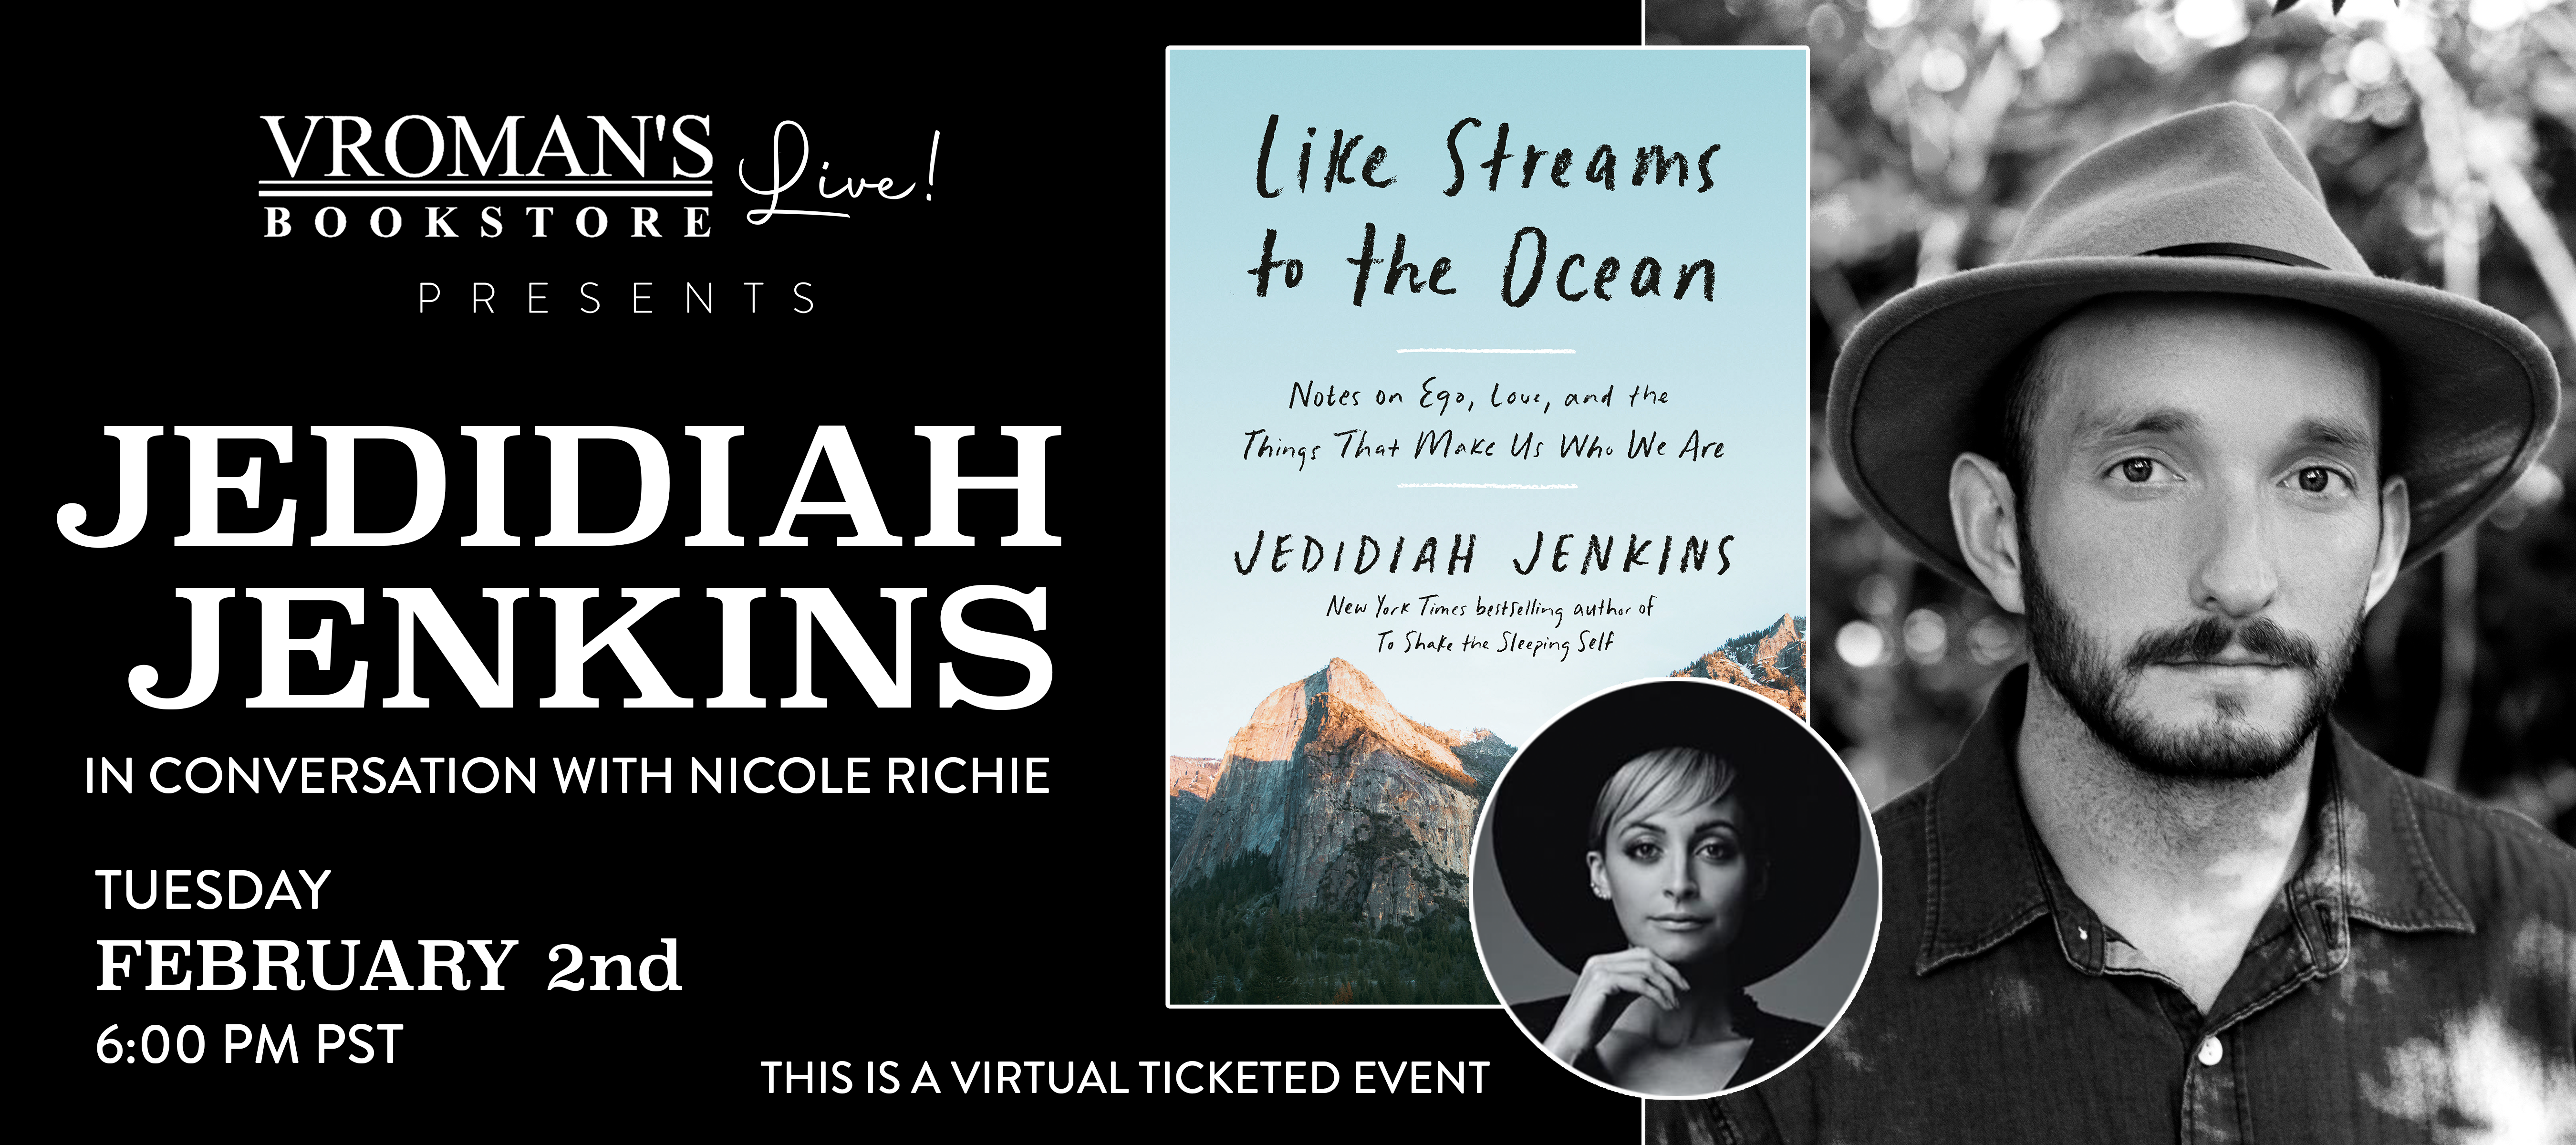 Jedidiah Jenkins, in conversation with Nicole Richie, on Tuesday February 2nd at 6pm